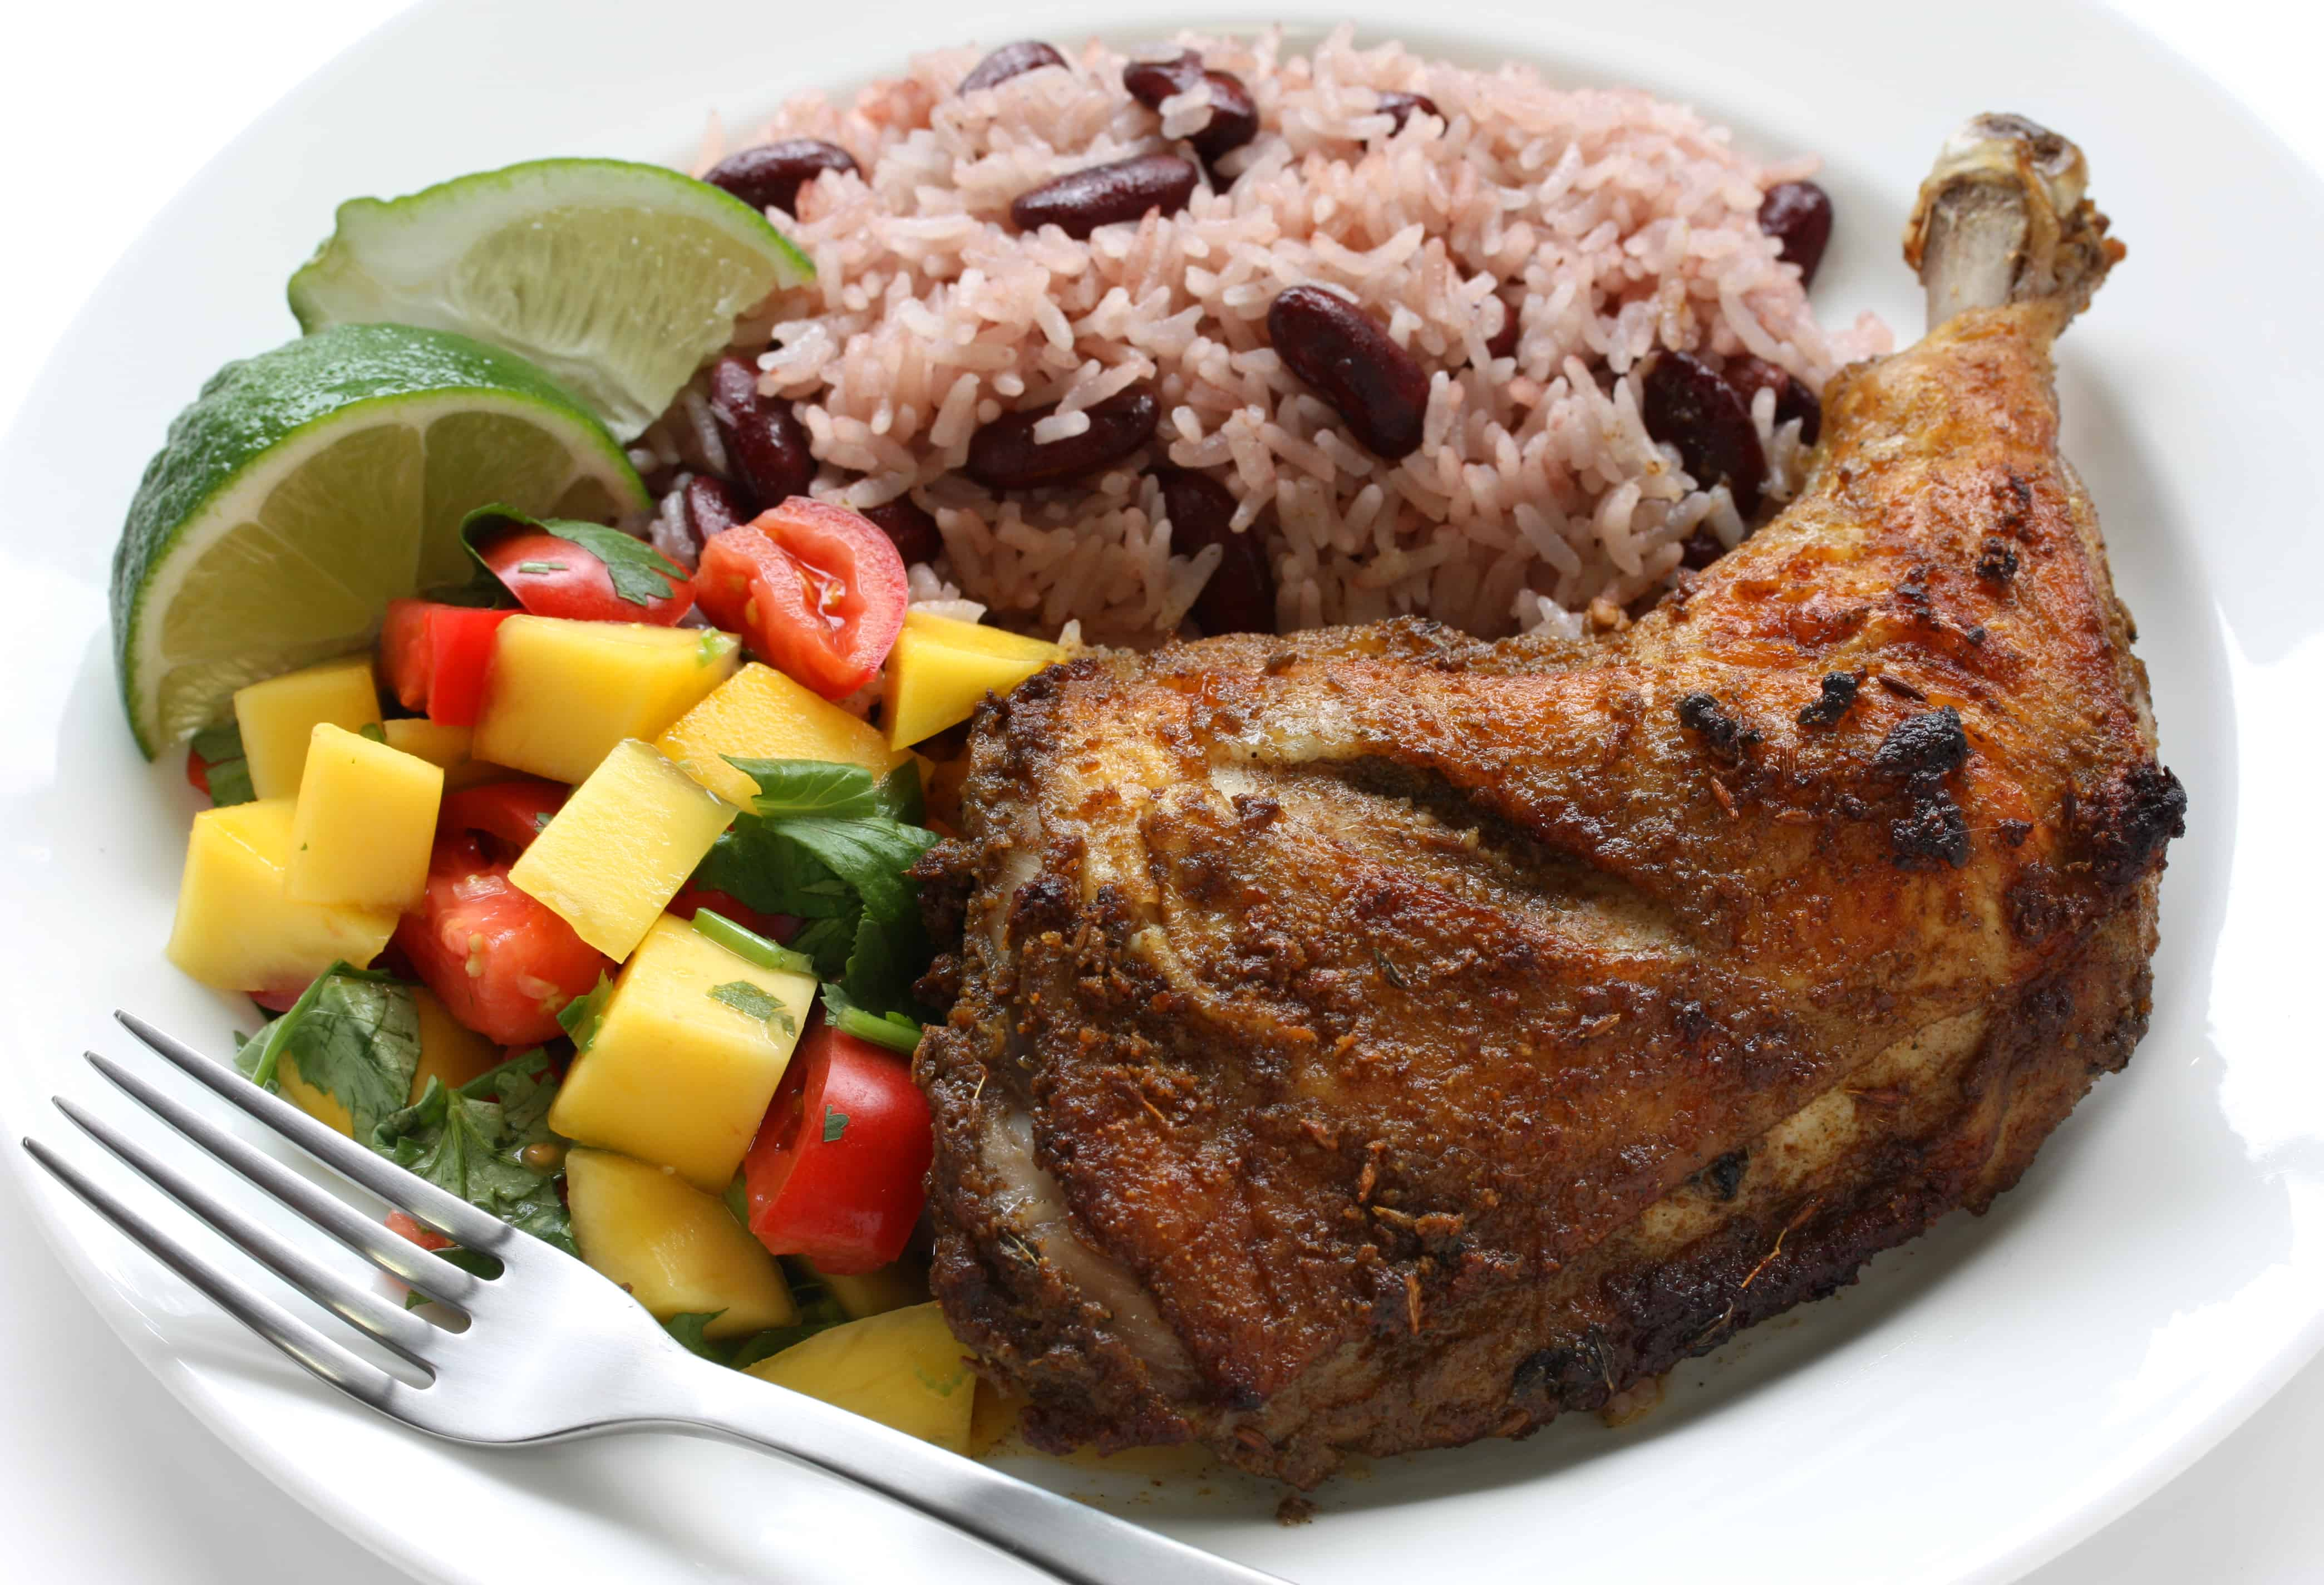 Traditional Jamaican Food Authentic Spicy Caribbean Foods In Jamaica Diana S Healthy Living